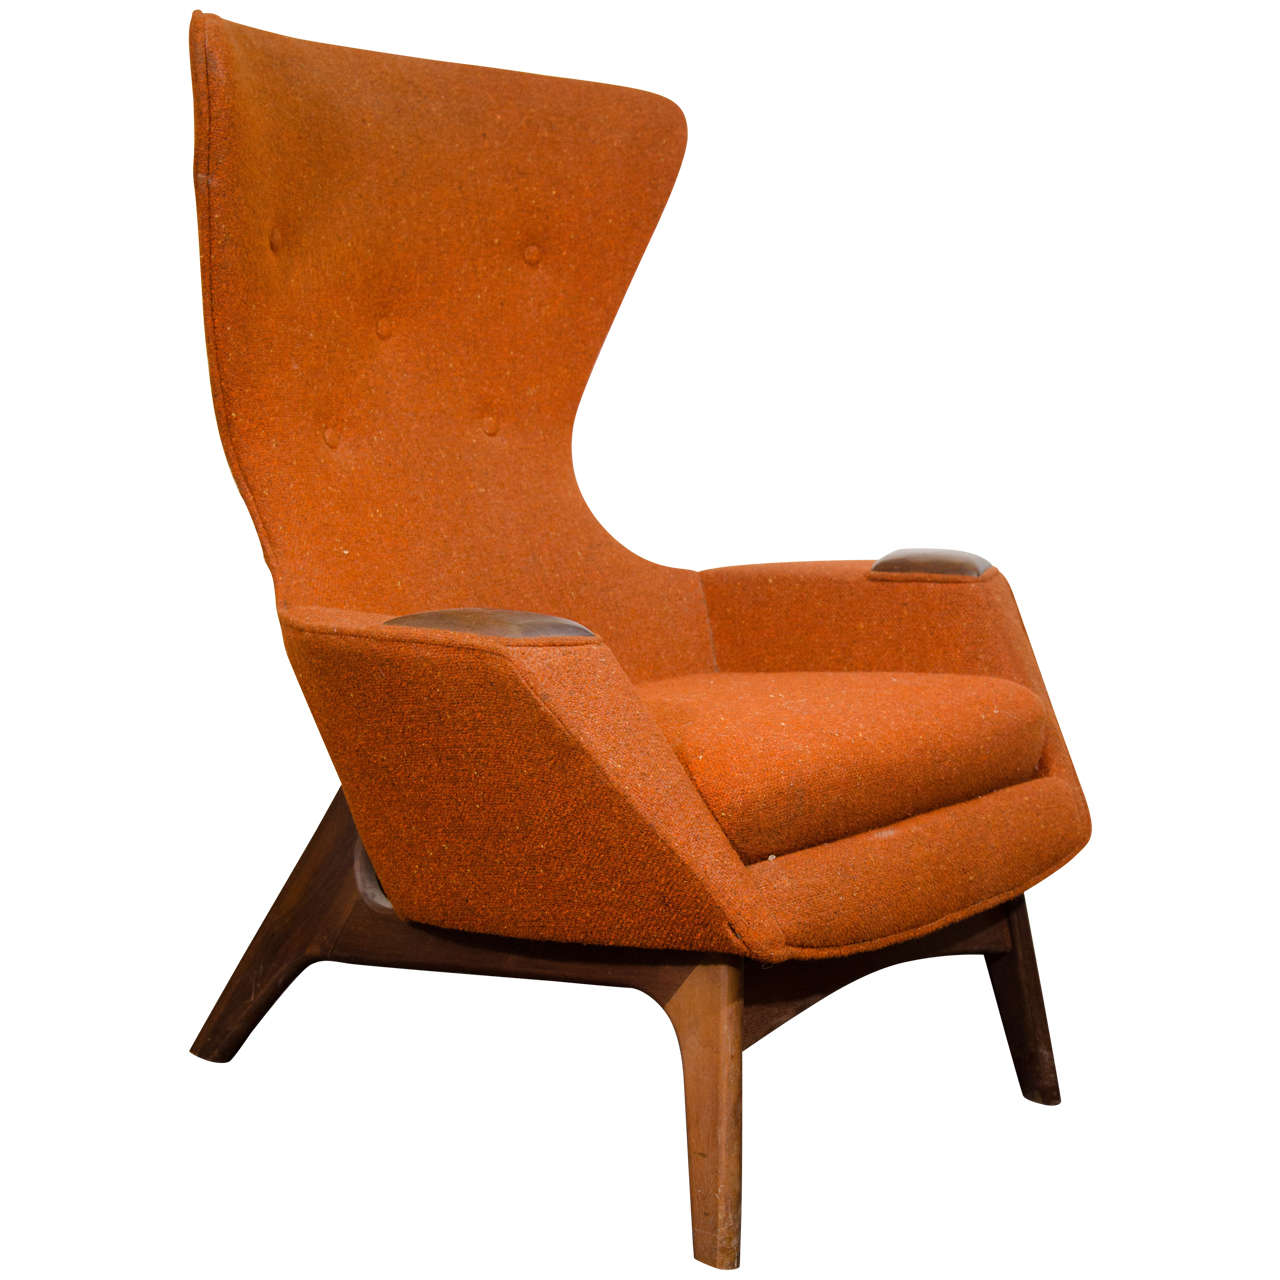 Charmant Midcentury High Back Wing Chair By Adrian Pearsall For Sale